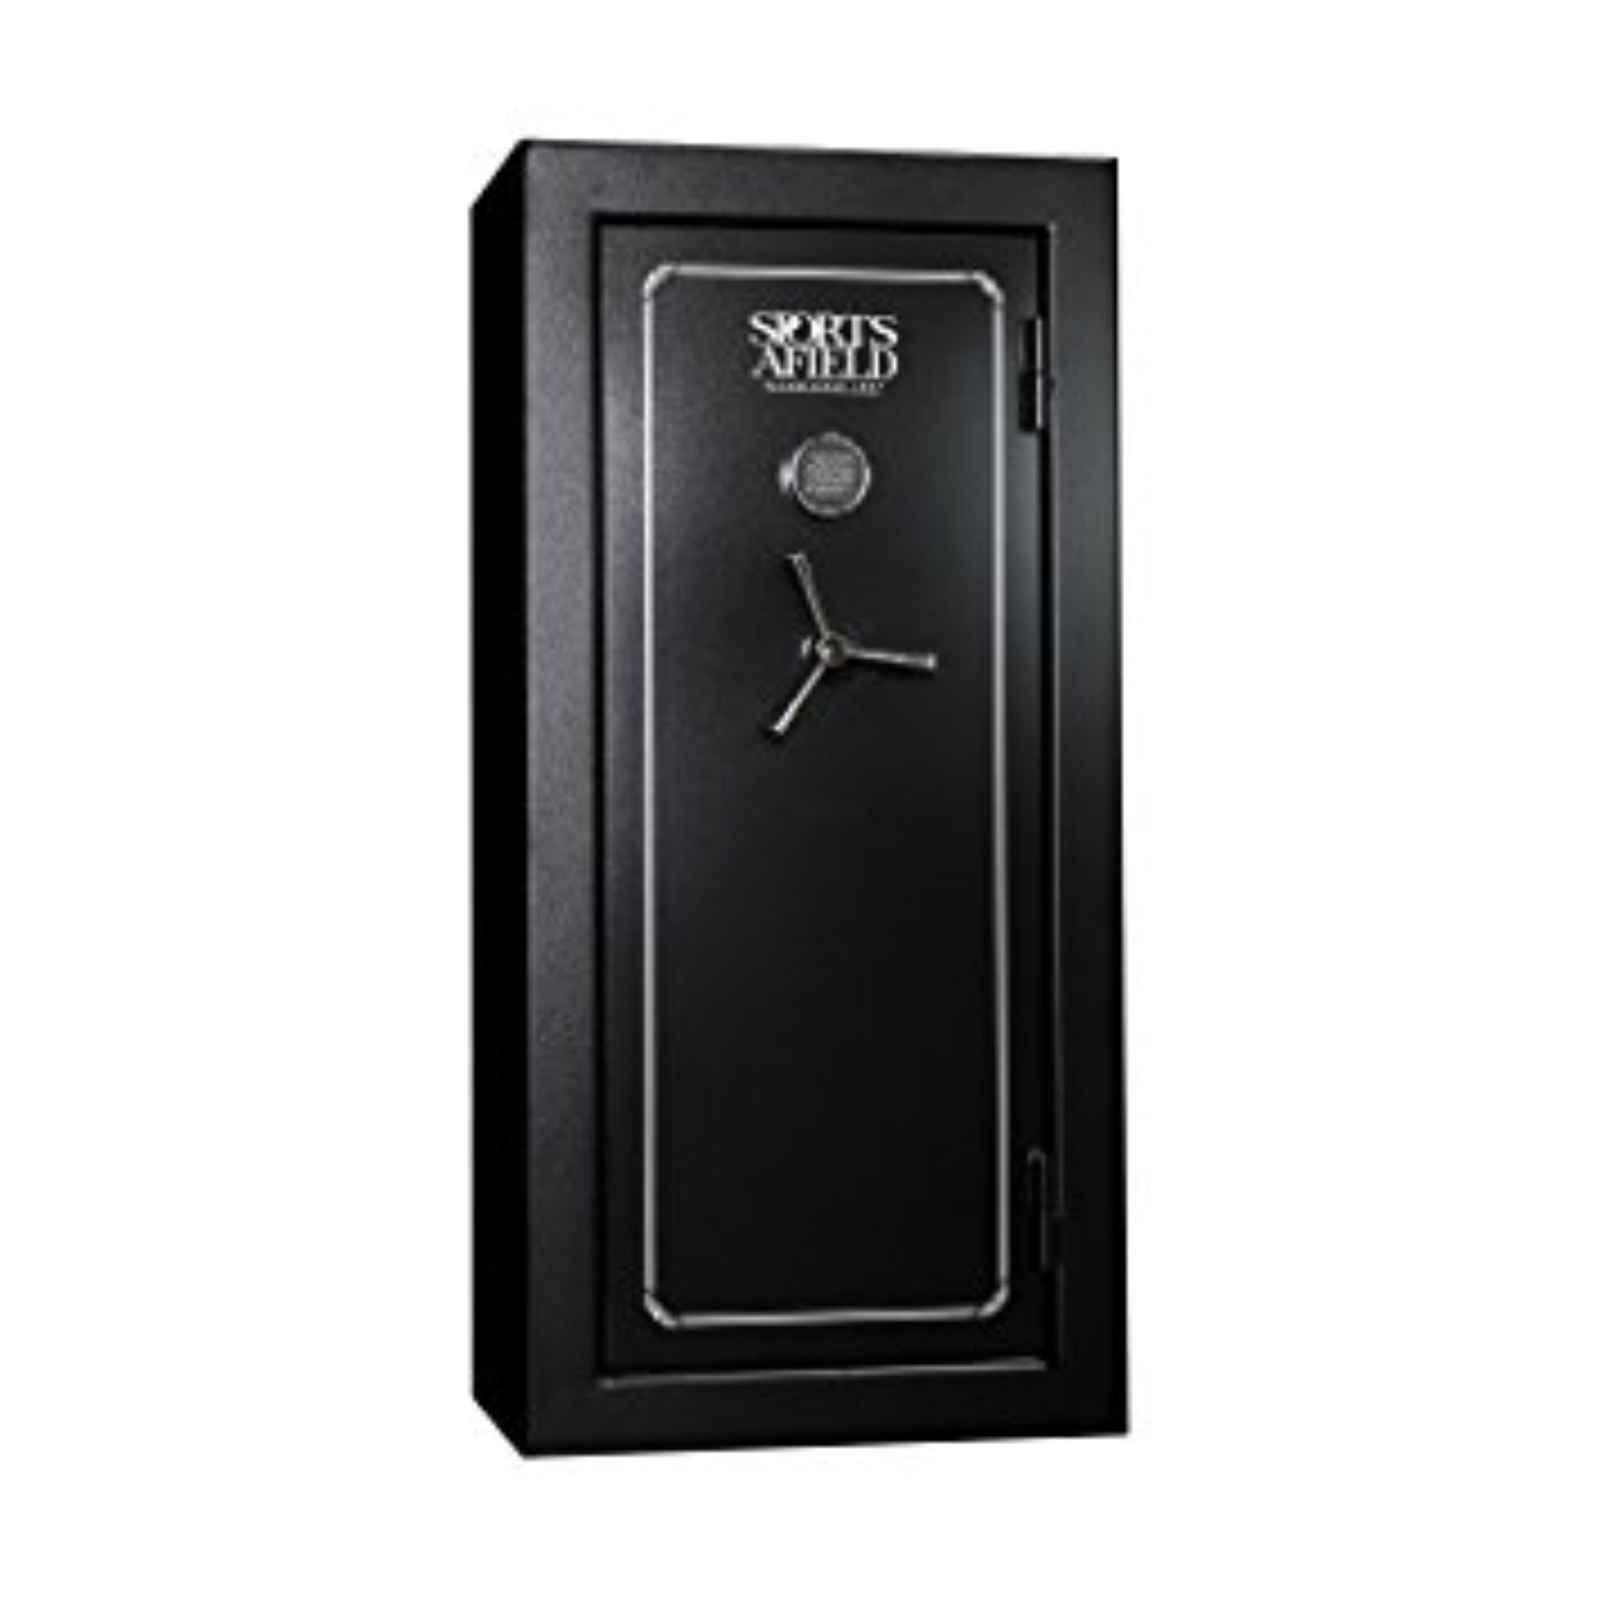 Sports Afield Gun Safe FREE DELIVERY 28+4Cap Black, SA5928 by Sports Afield